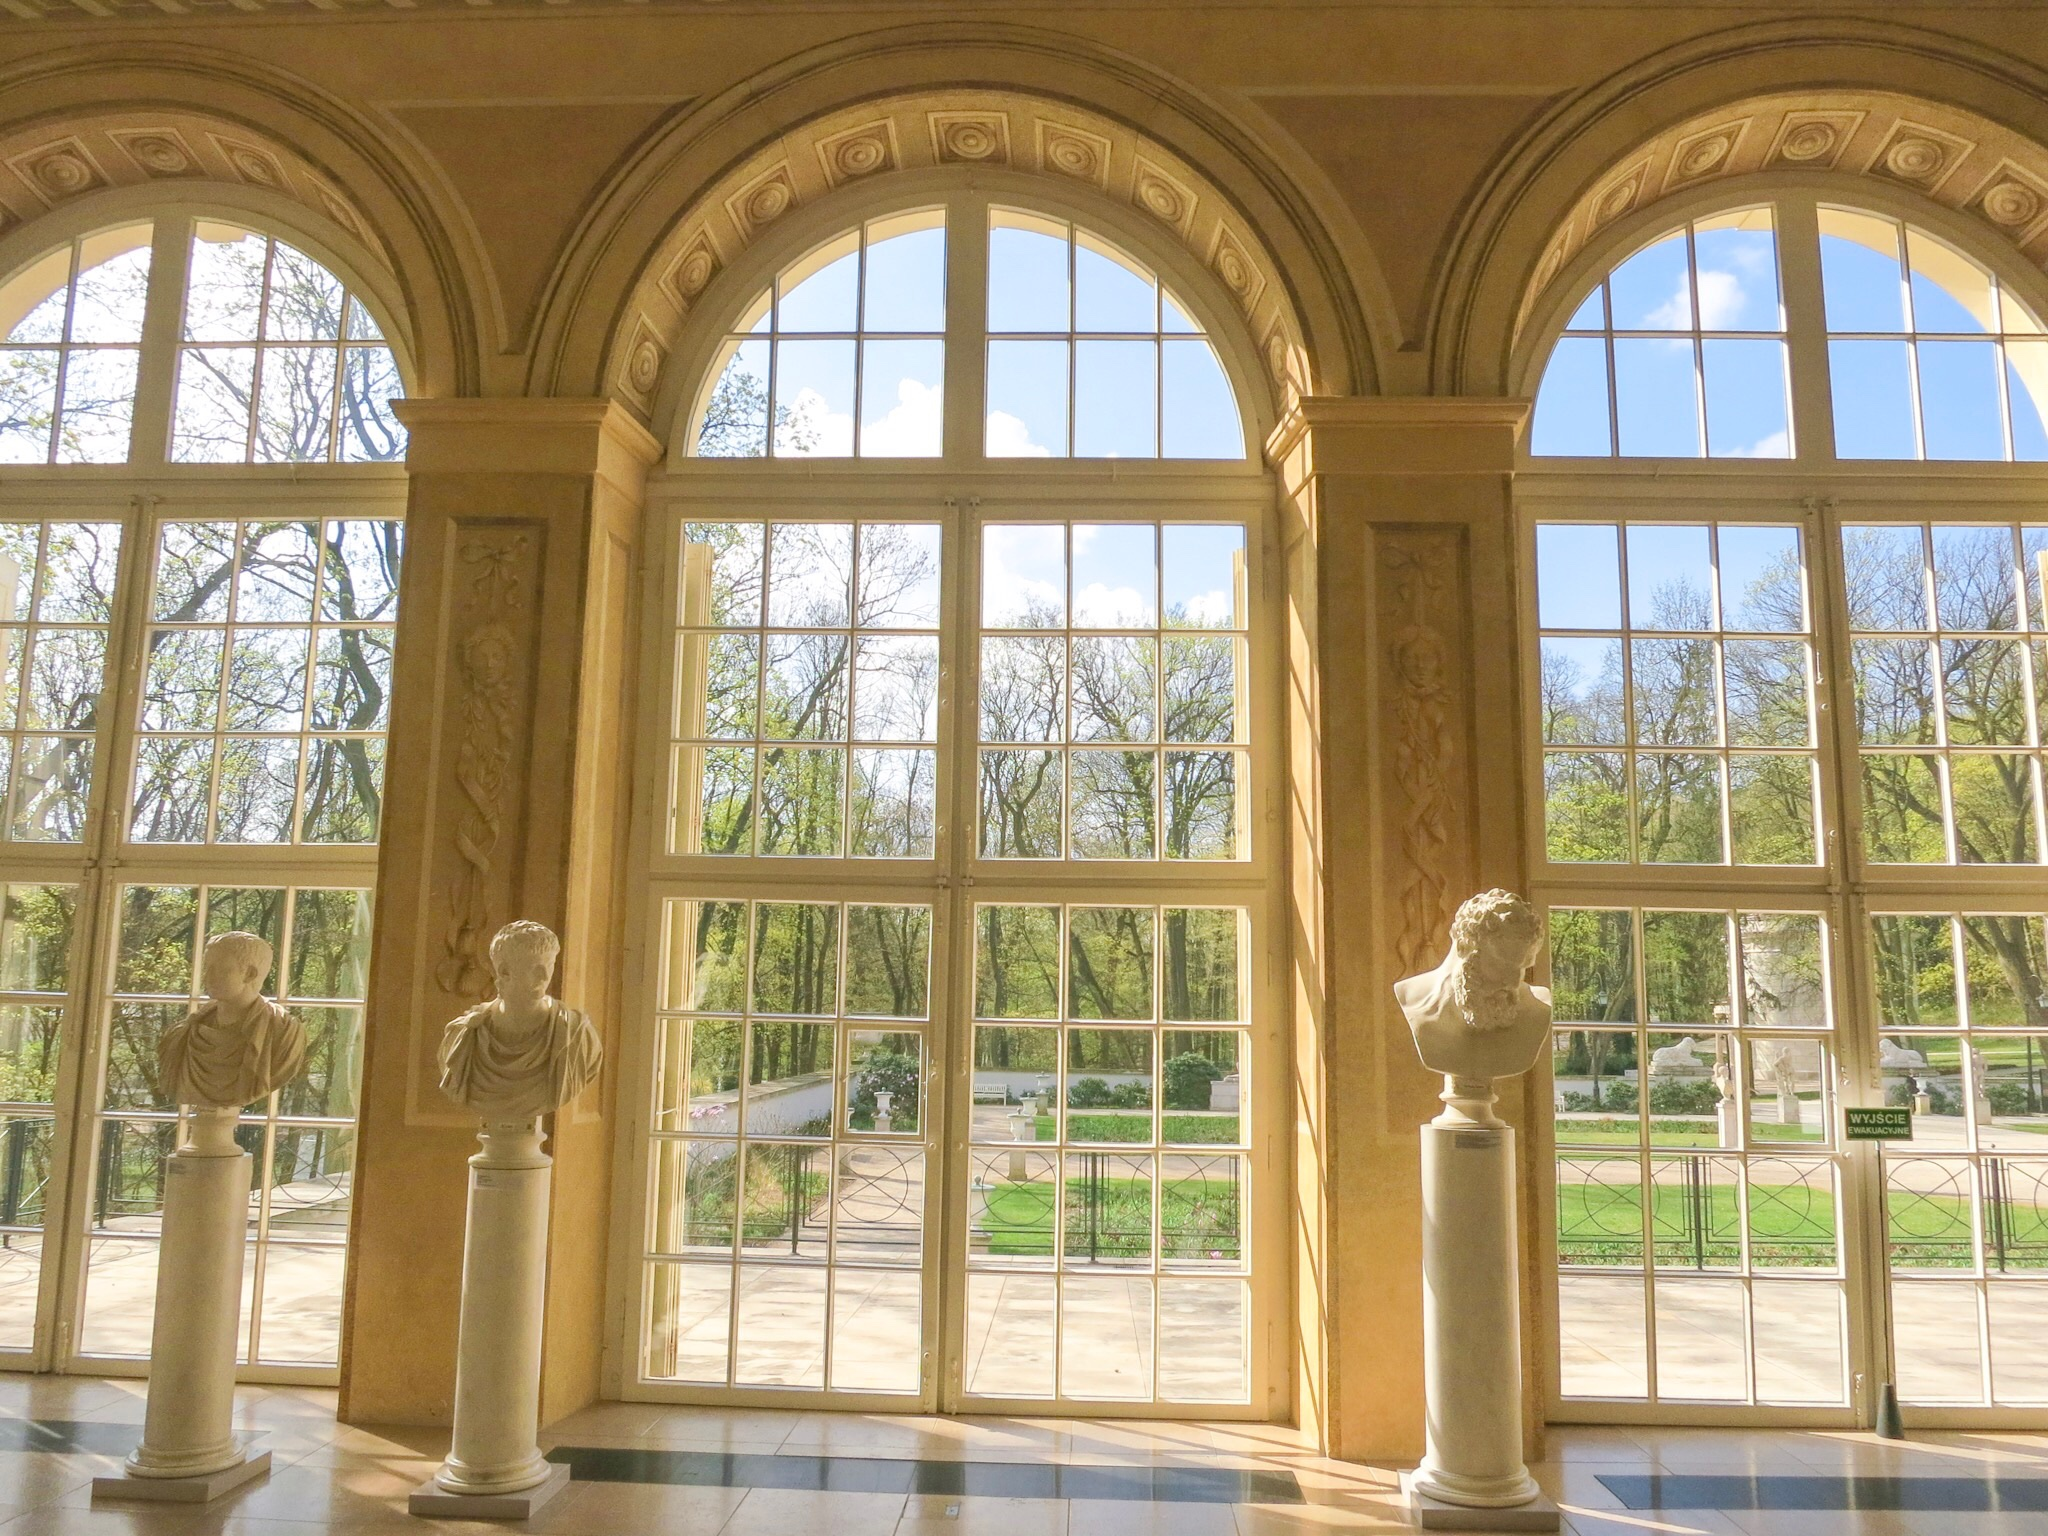 The windows at the Old Orangery in Łazienki Royal Park, also brilliantly unadorned